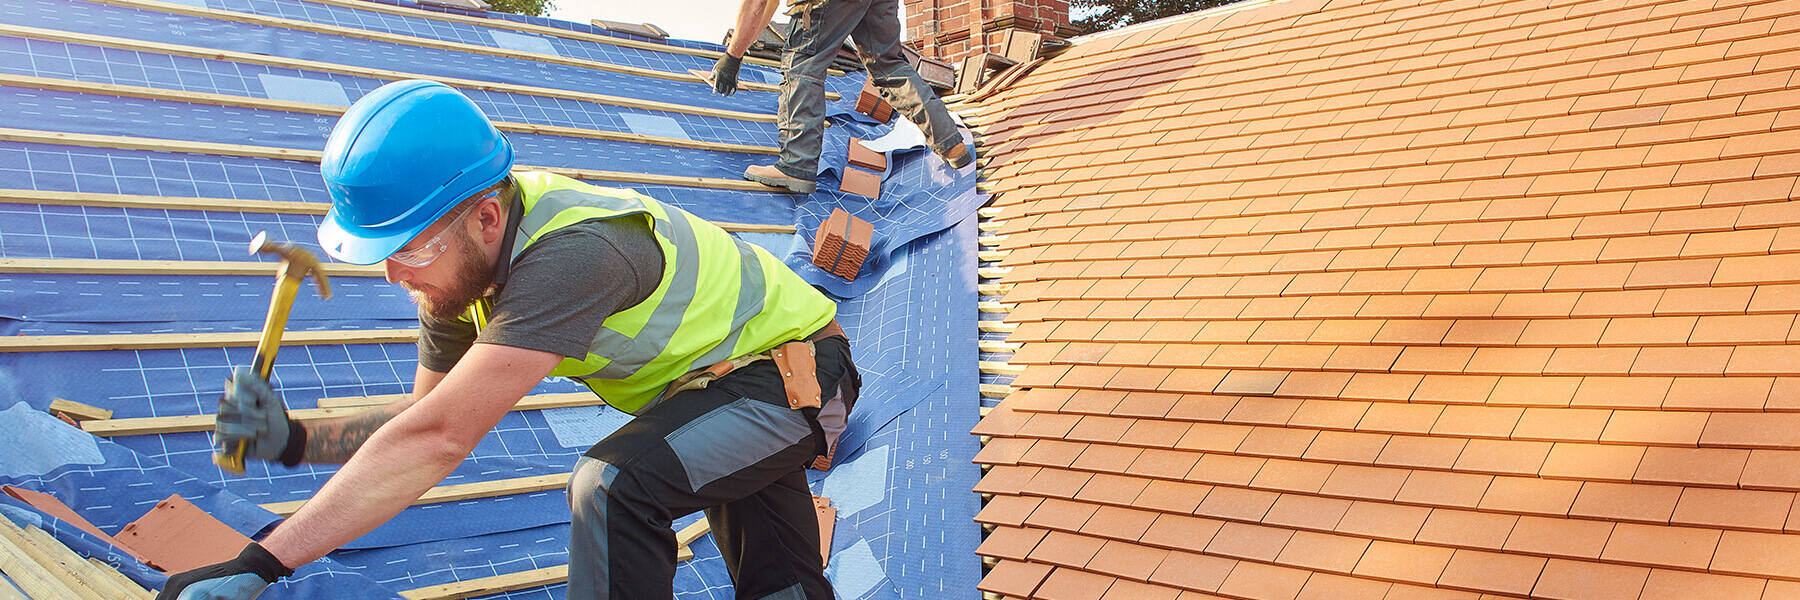 Construction worker wearing blue hard hat bends over to hammer a new roof on a residence